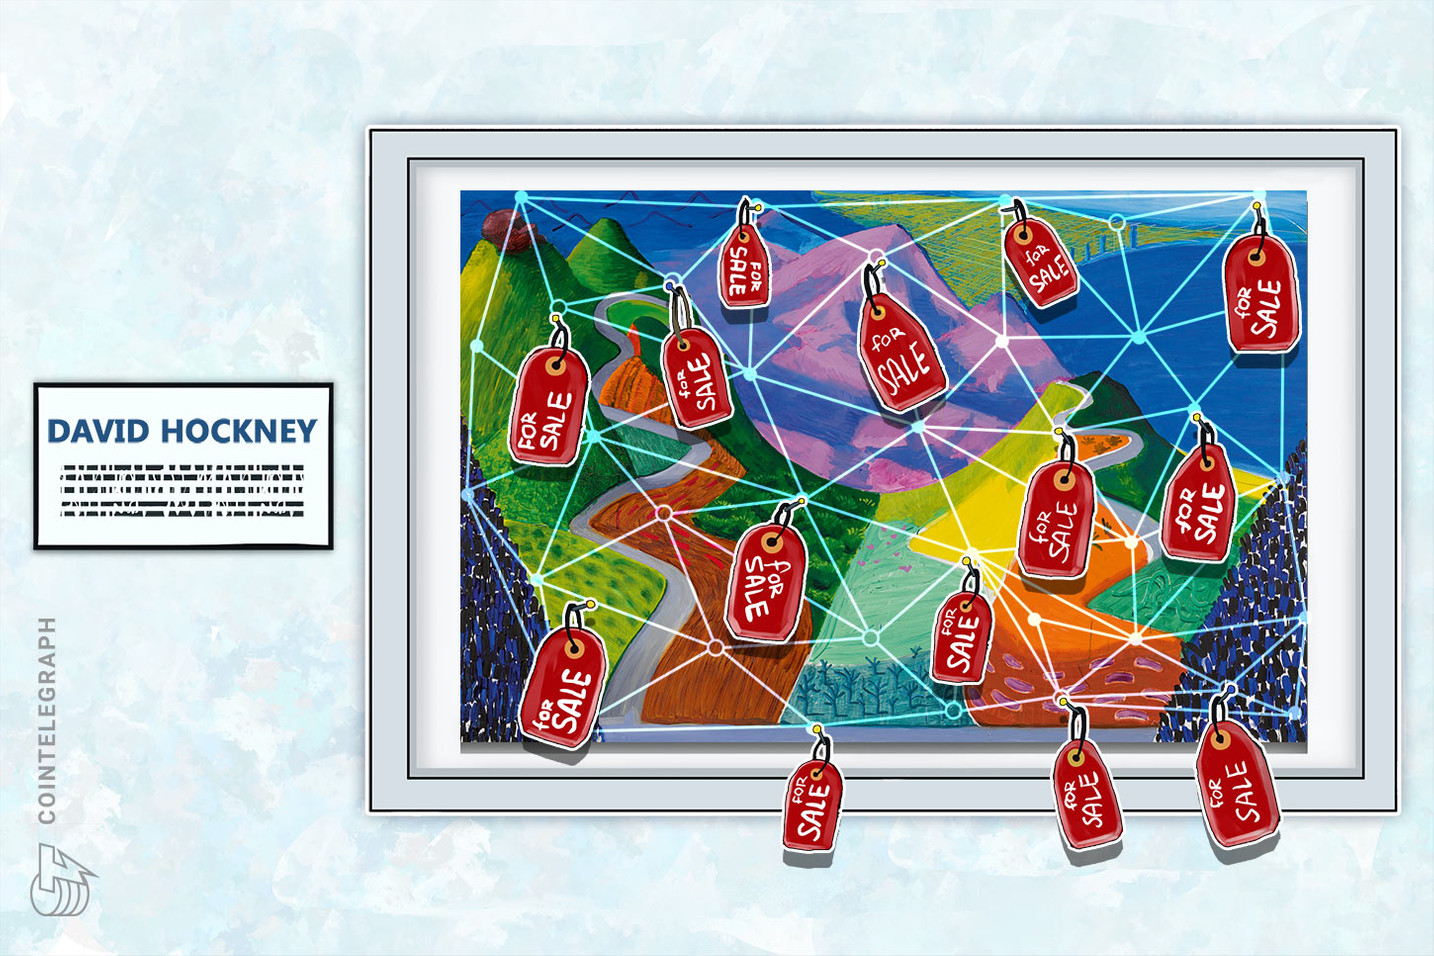 South Korean ArtBloc to Sell David Hockney Paintings via Blockchain